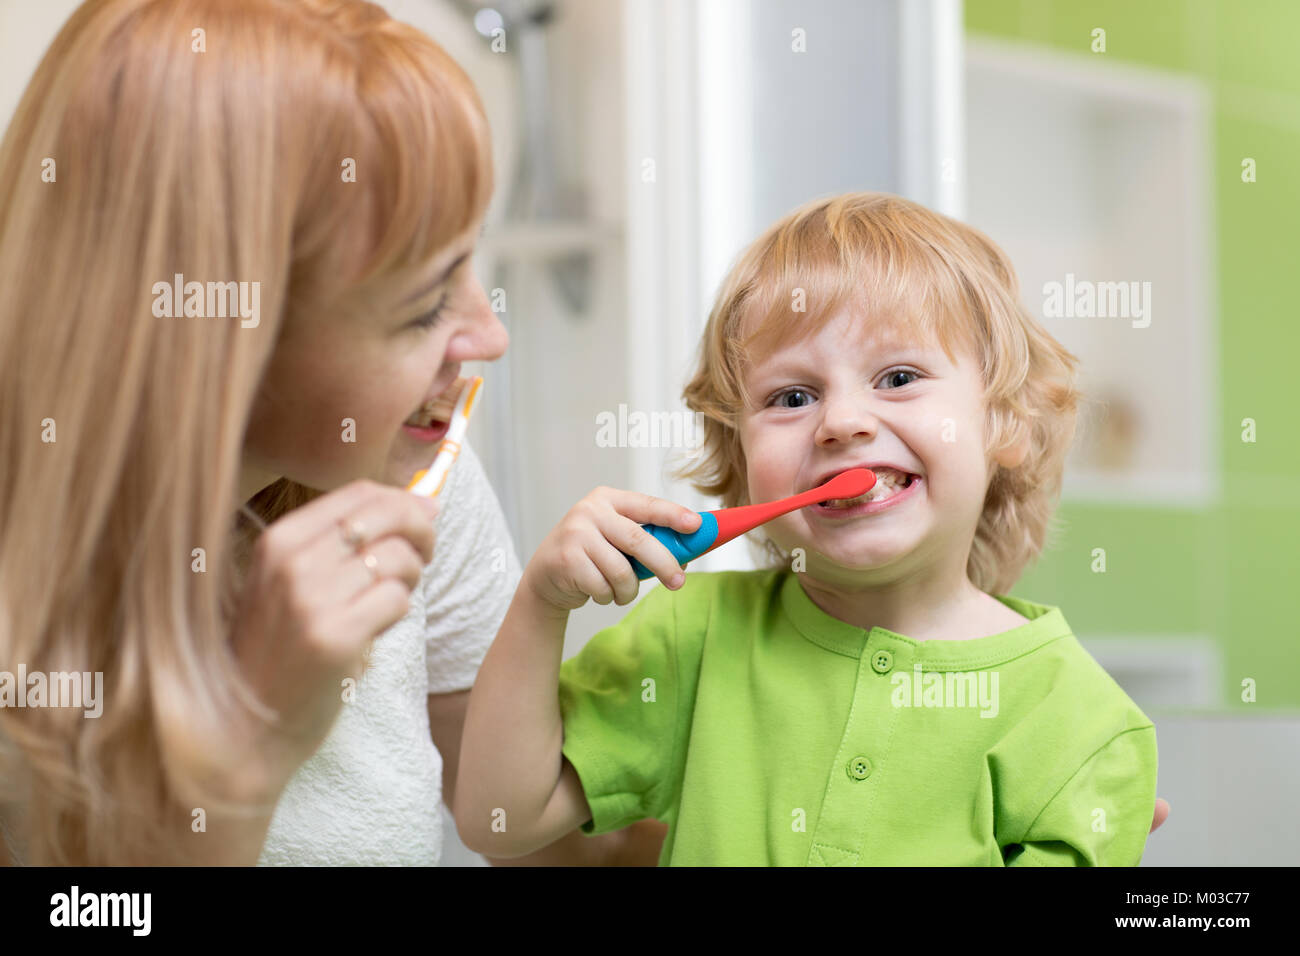 how to get child to brush teeth